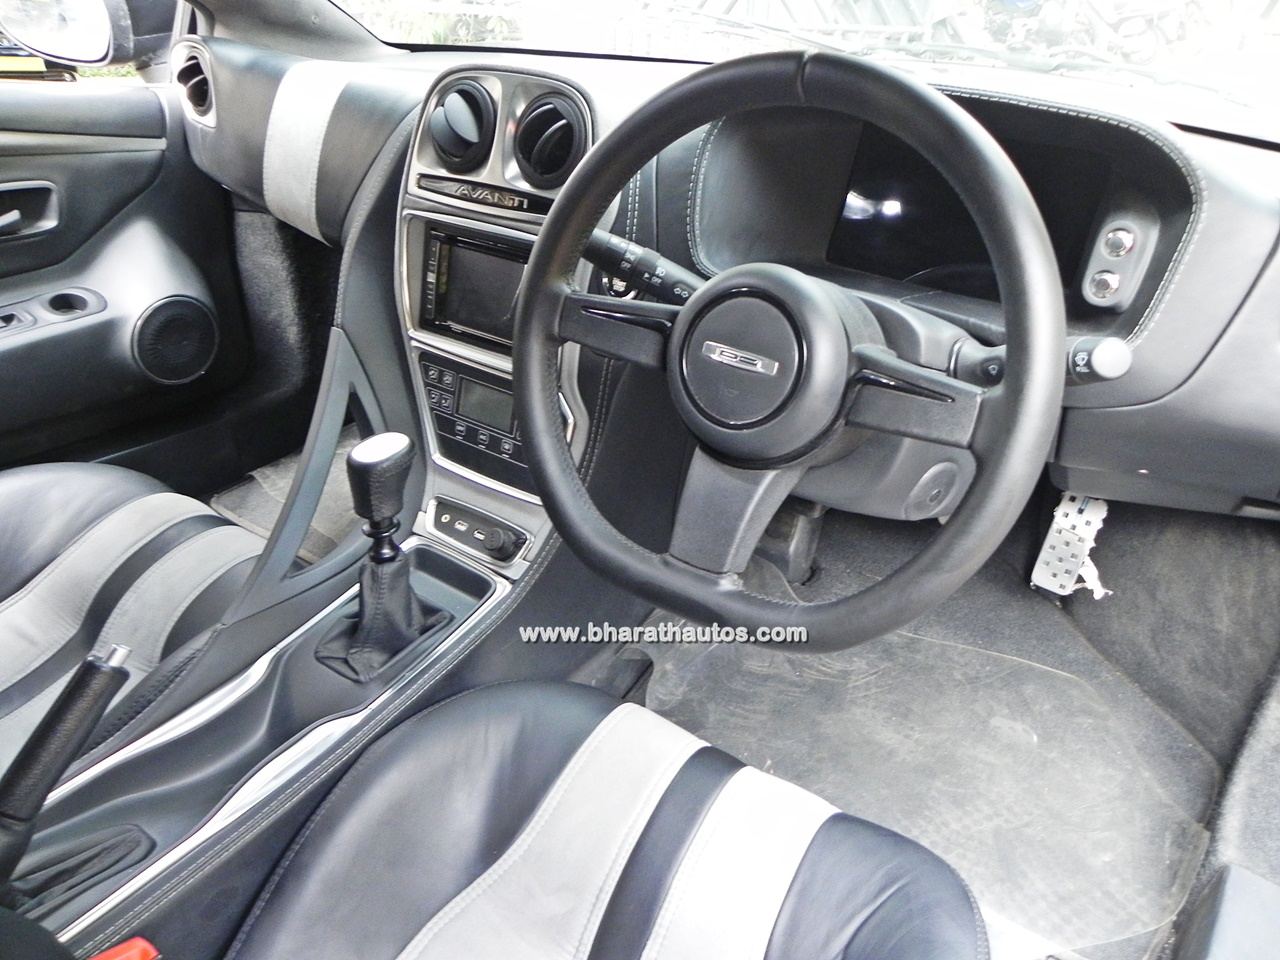 dc avanti shiny glossy black dashboard design bharathautos automobile news updates. Black Bedroom Furniture Sets. Home Design Ideas